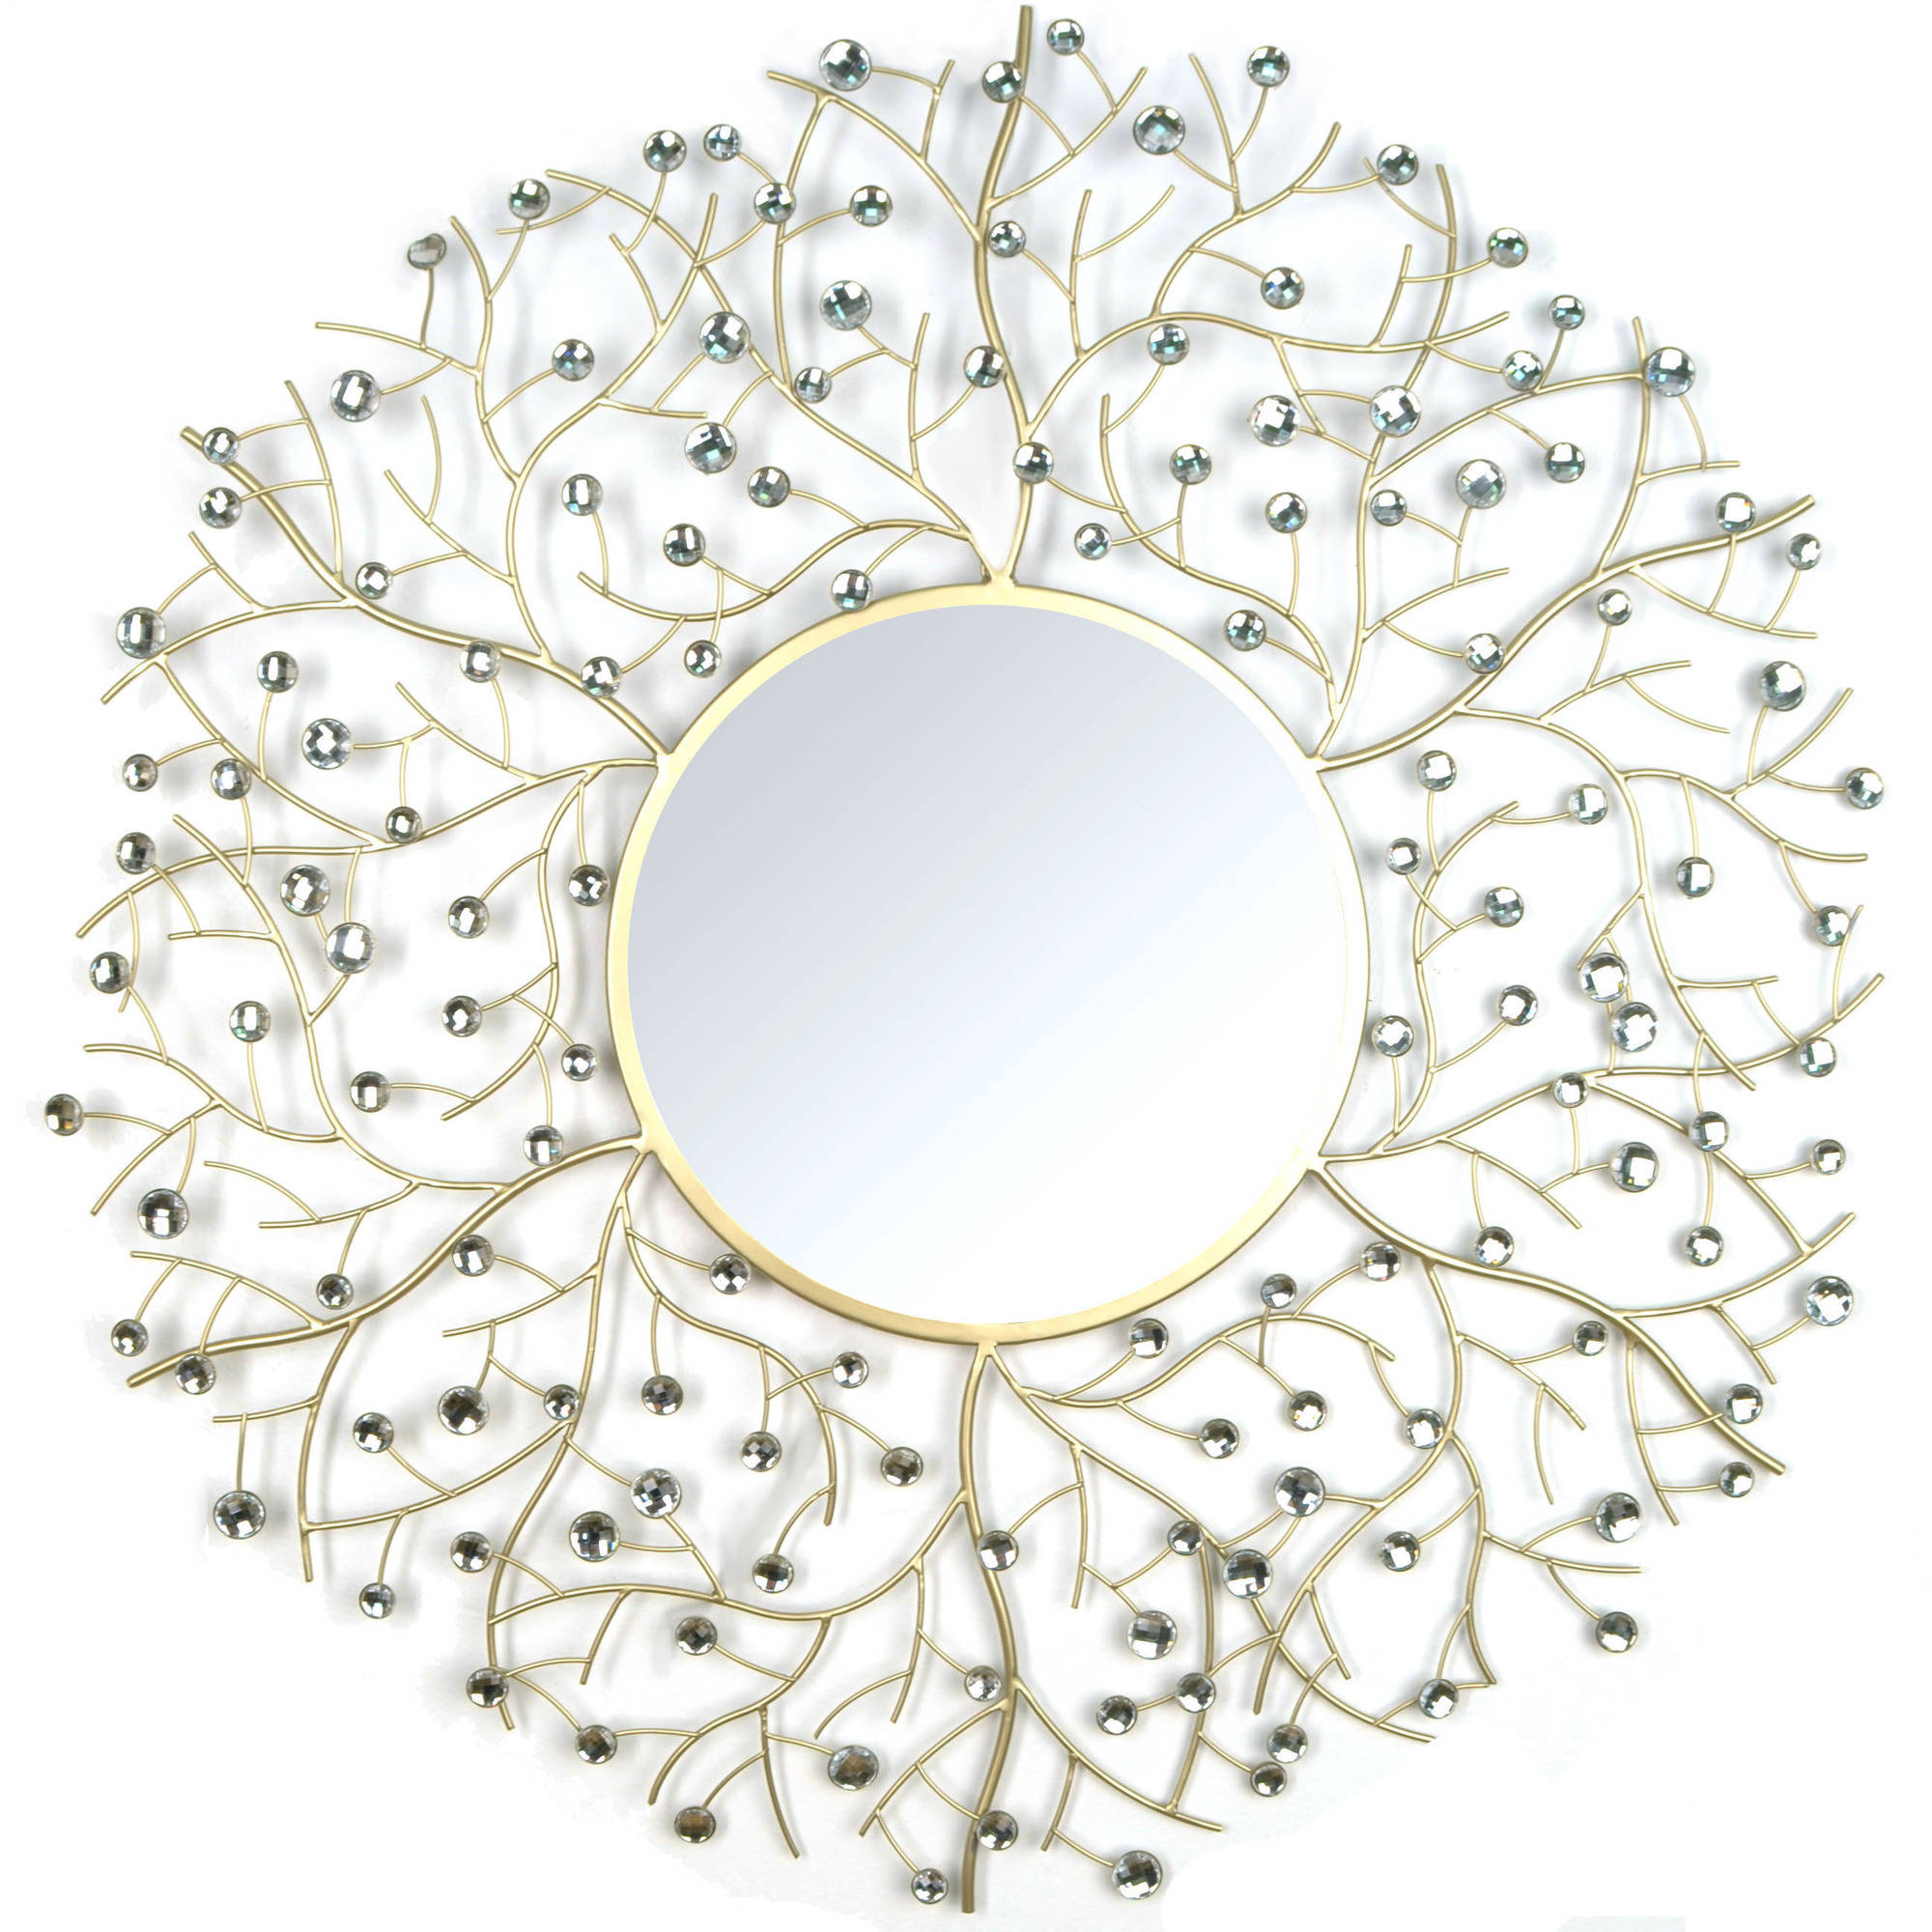 Stratton Home Decor Acrylic Eloise Wall Mirror SHD0162